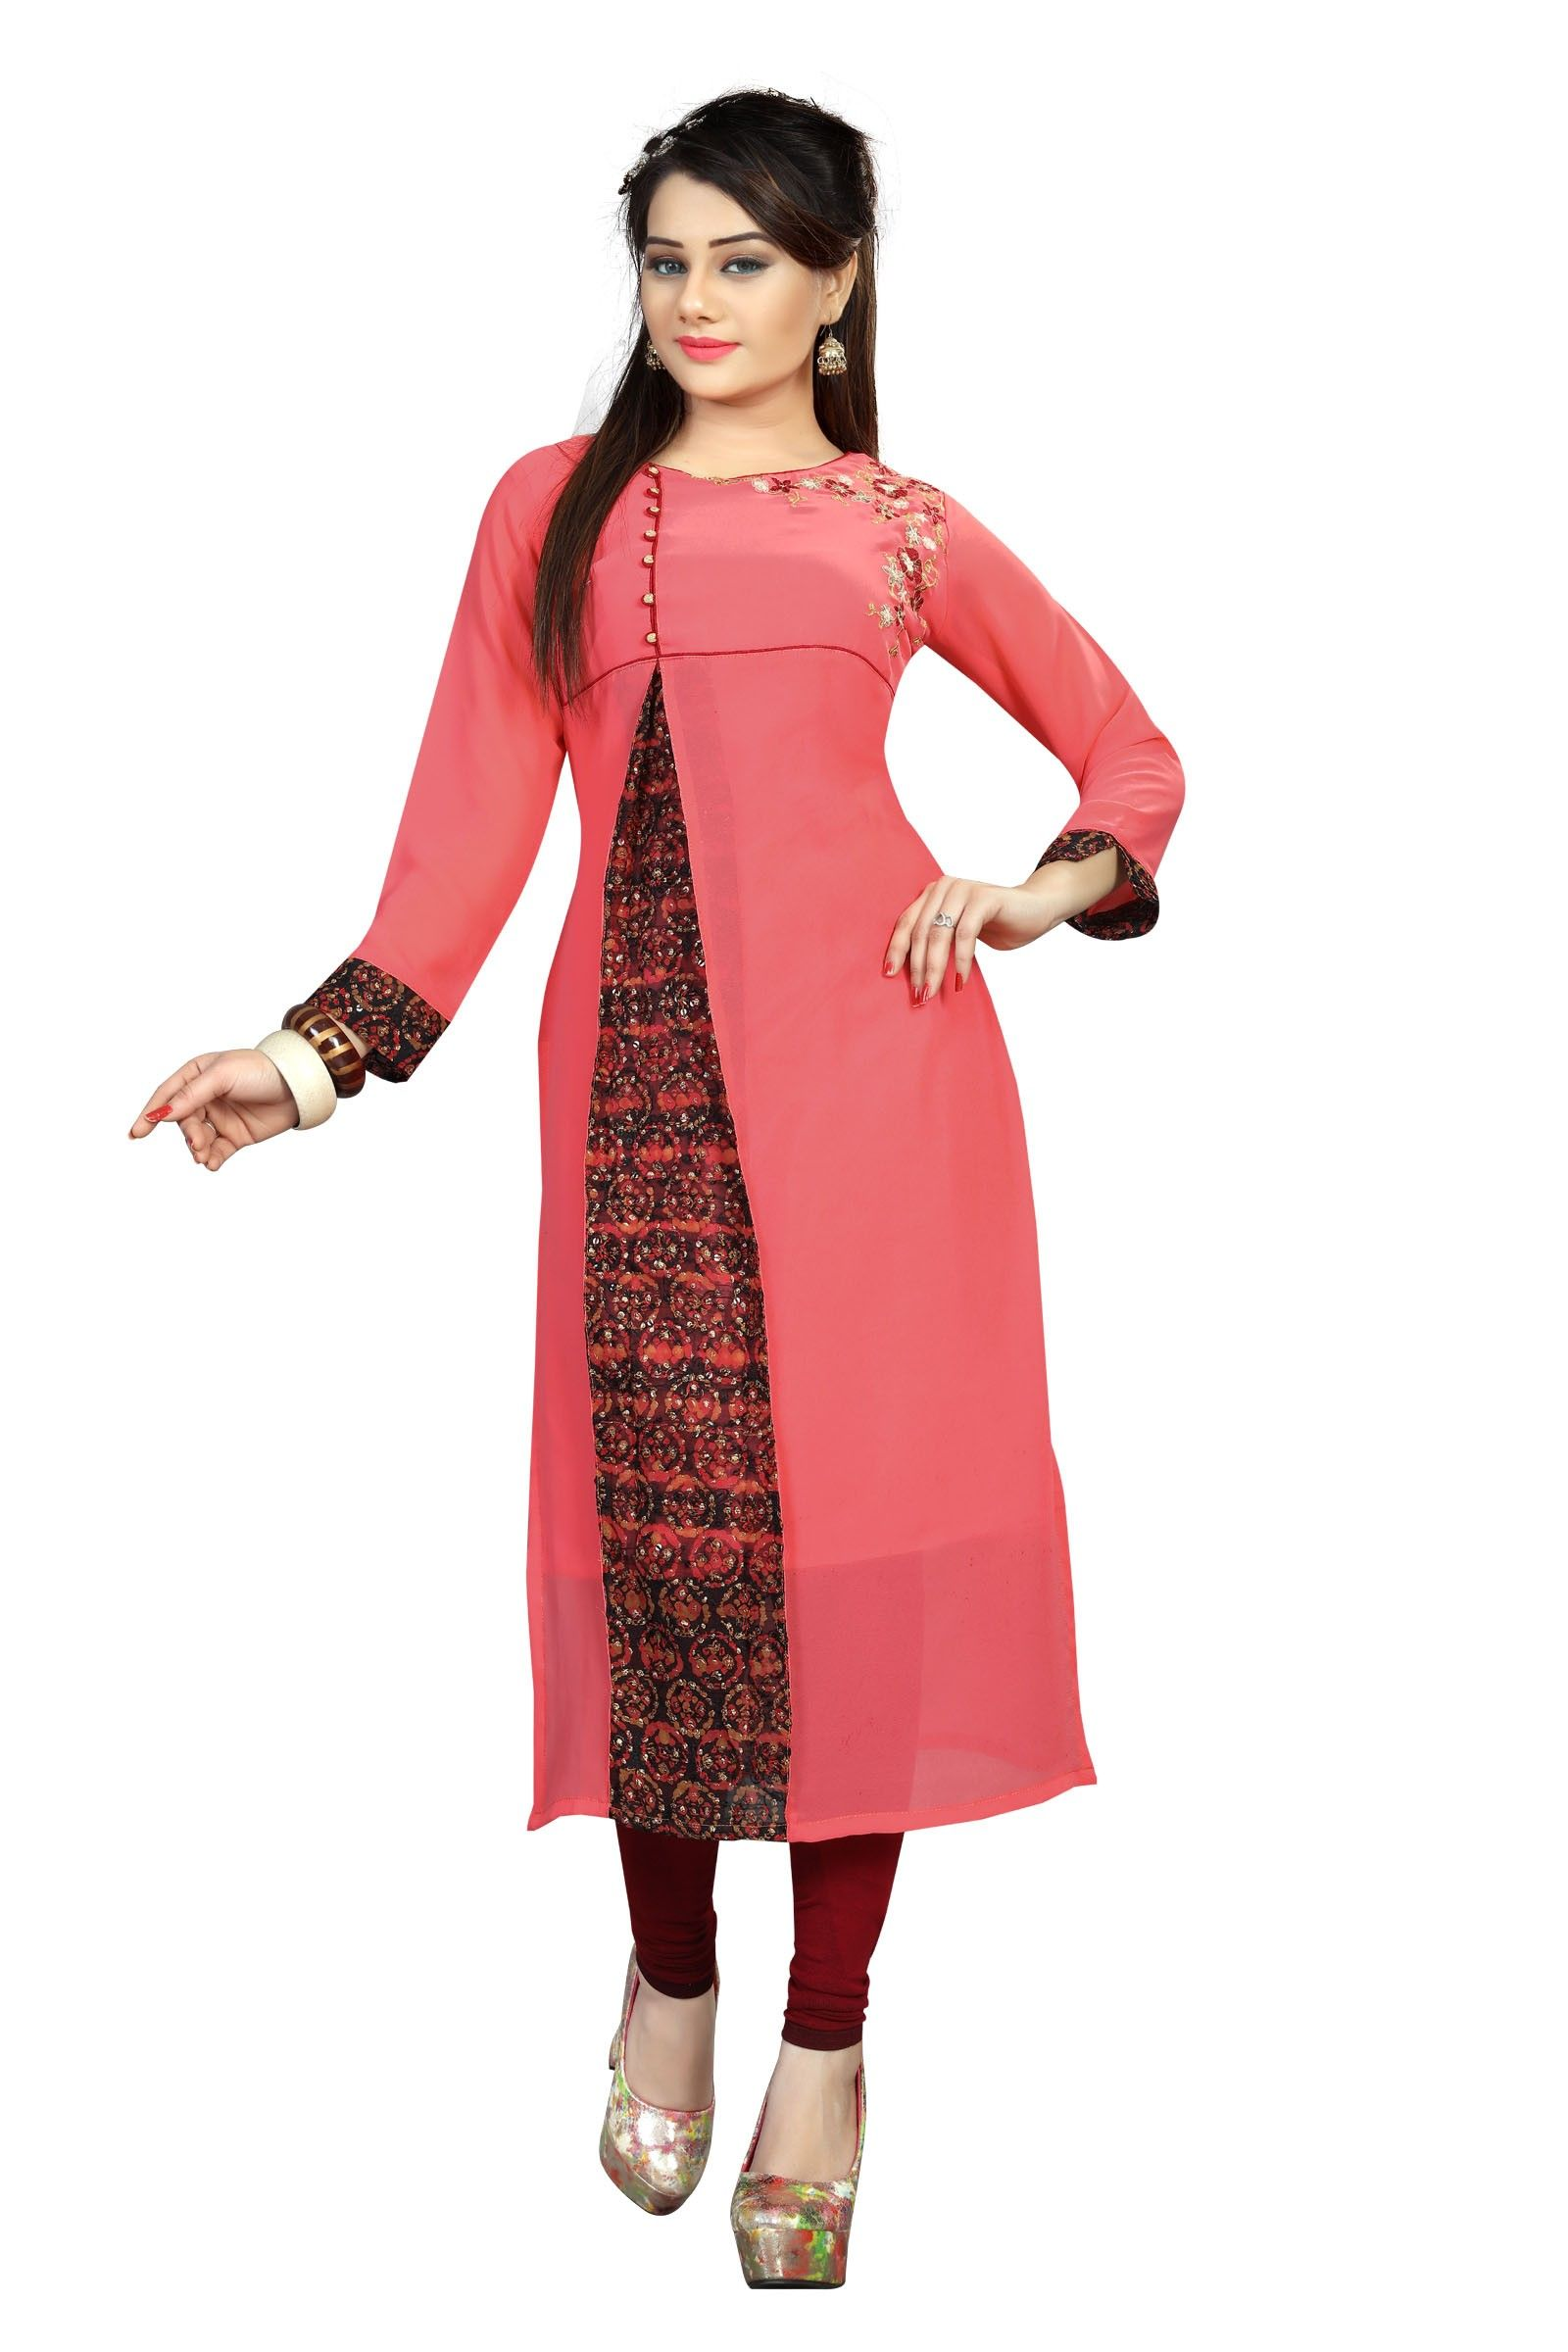 c0d4982b4 Buy Apparels- Light Pink Colour Georgette With Embroidery Work Kurti Party  Wear Kurtis